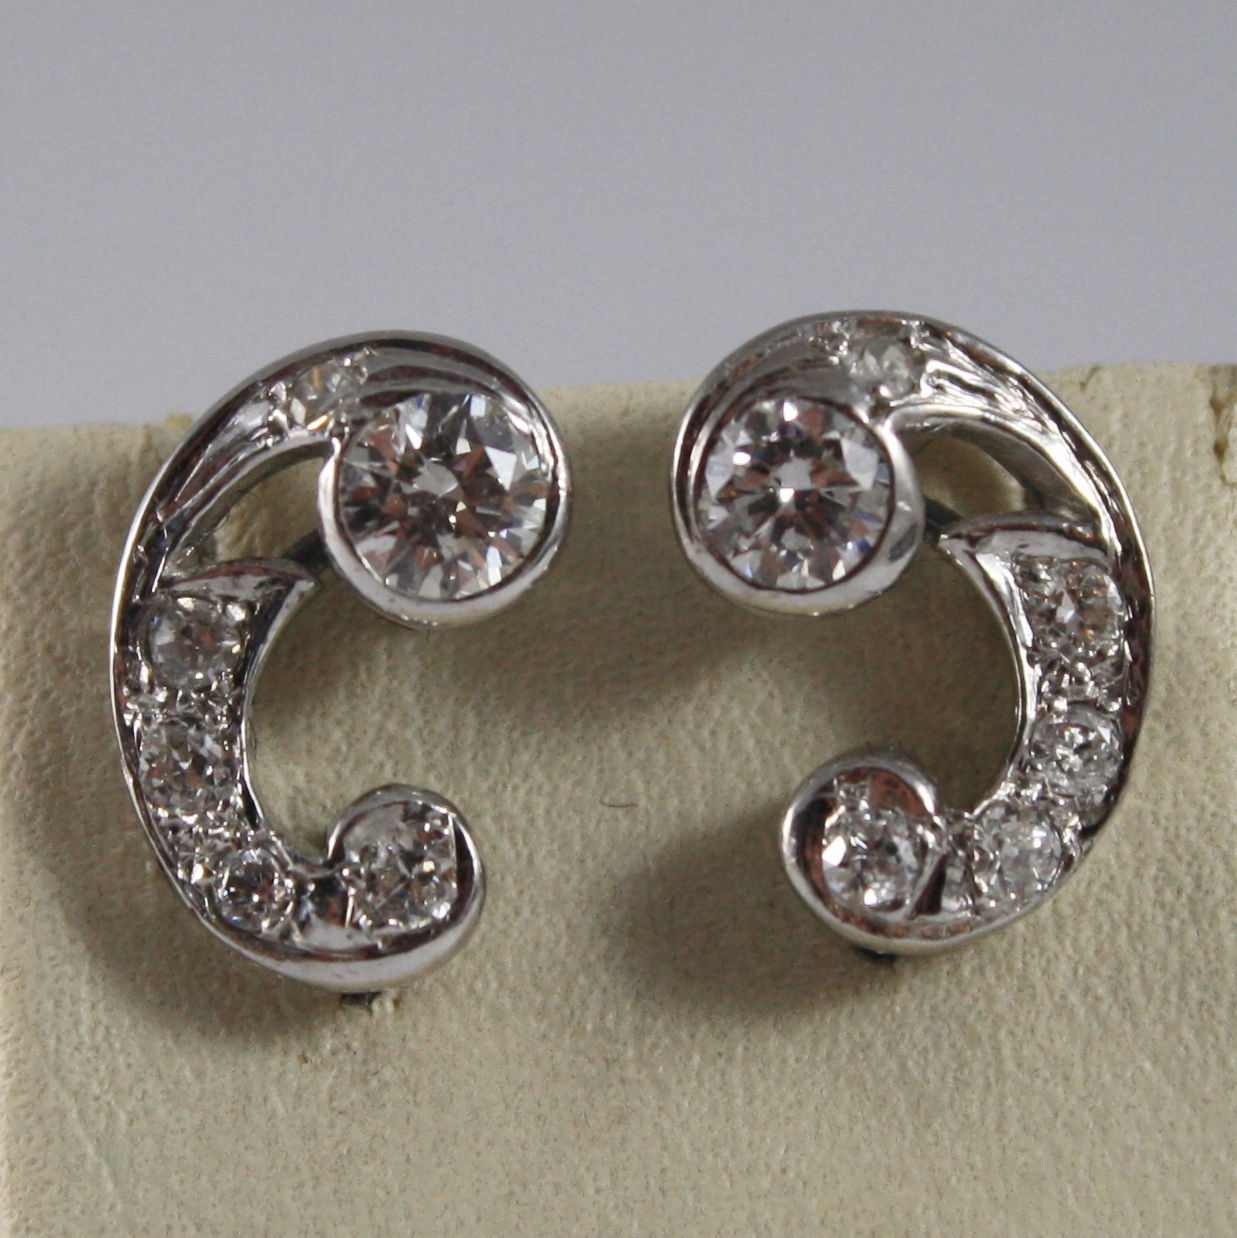 SOLID 18K WHITE GOLD EARRINGS, ETHNYC STYLE WITH DIAMONDS, DIAMOND MADE IN ITALY